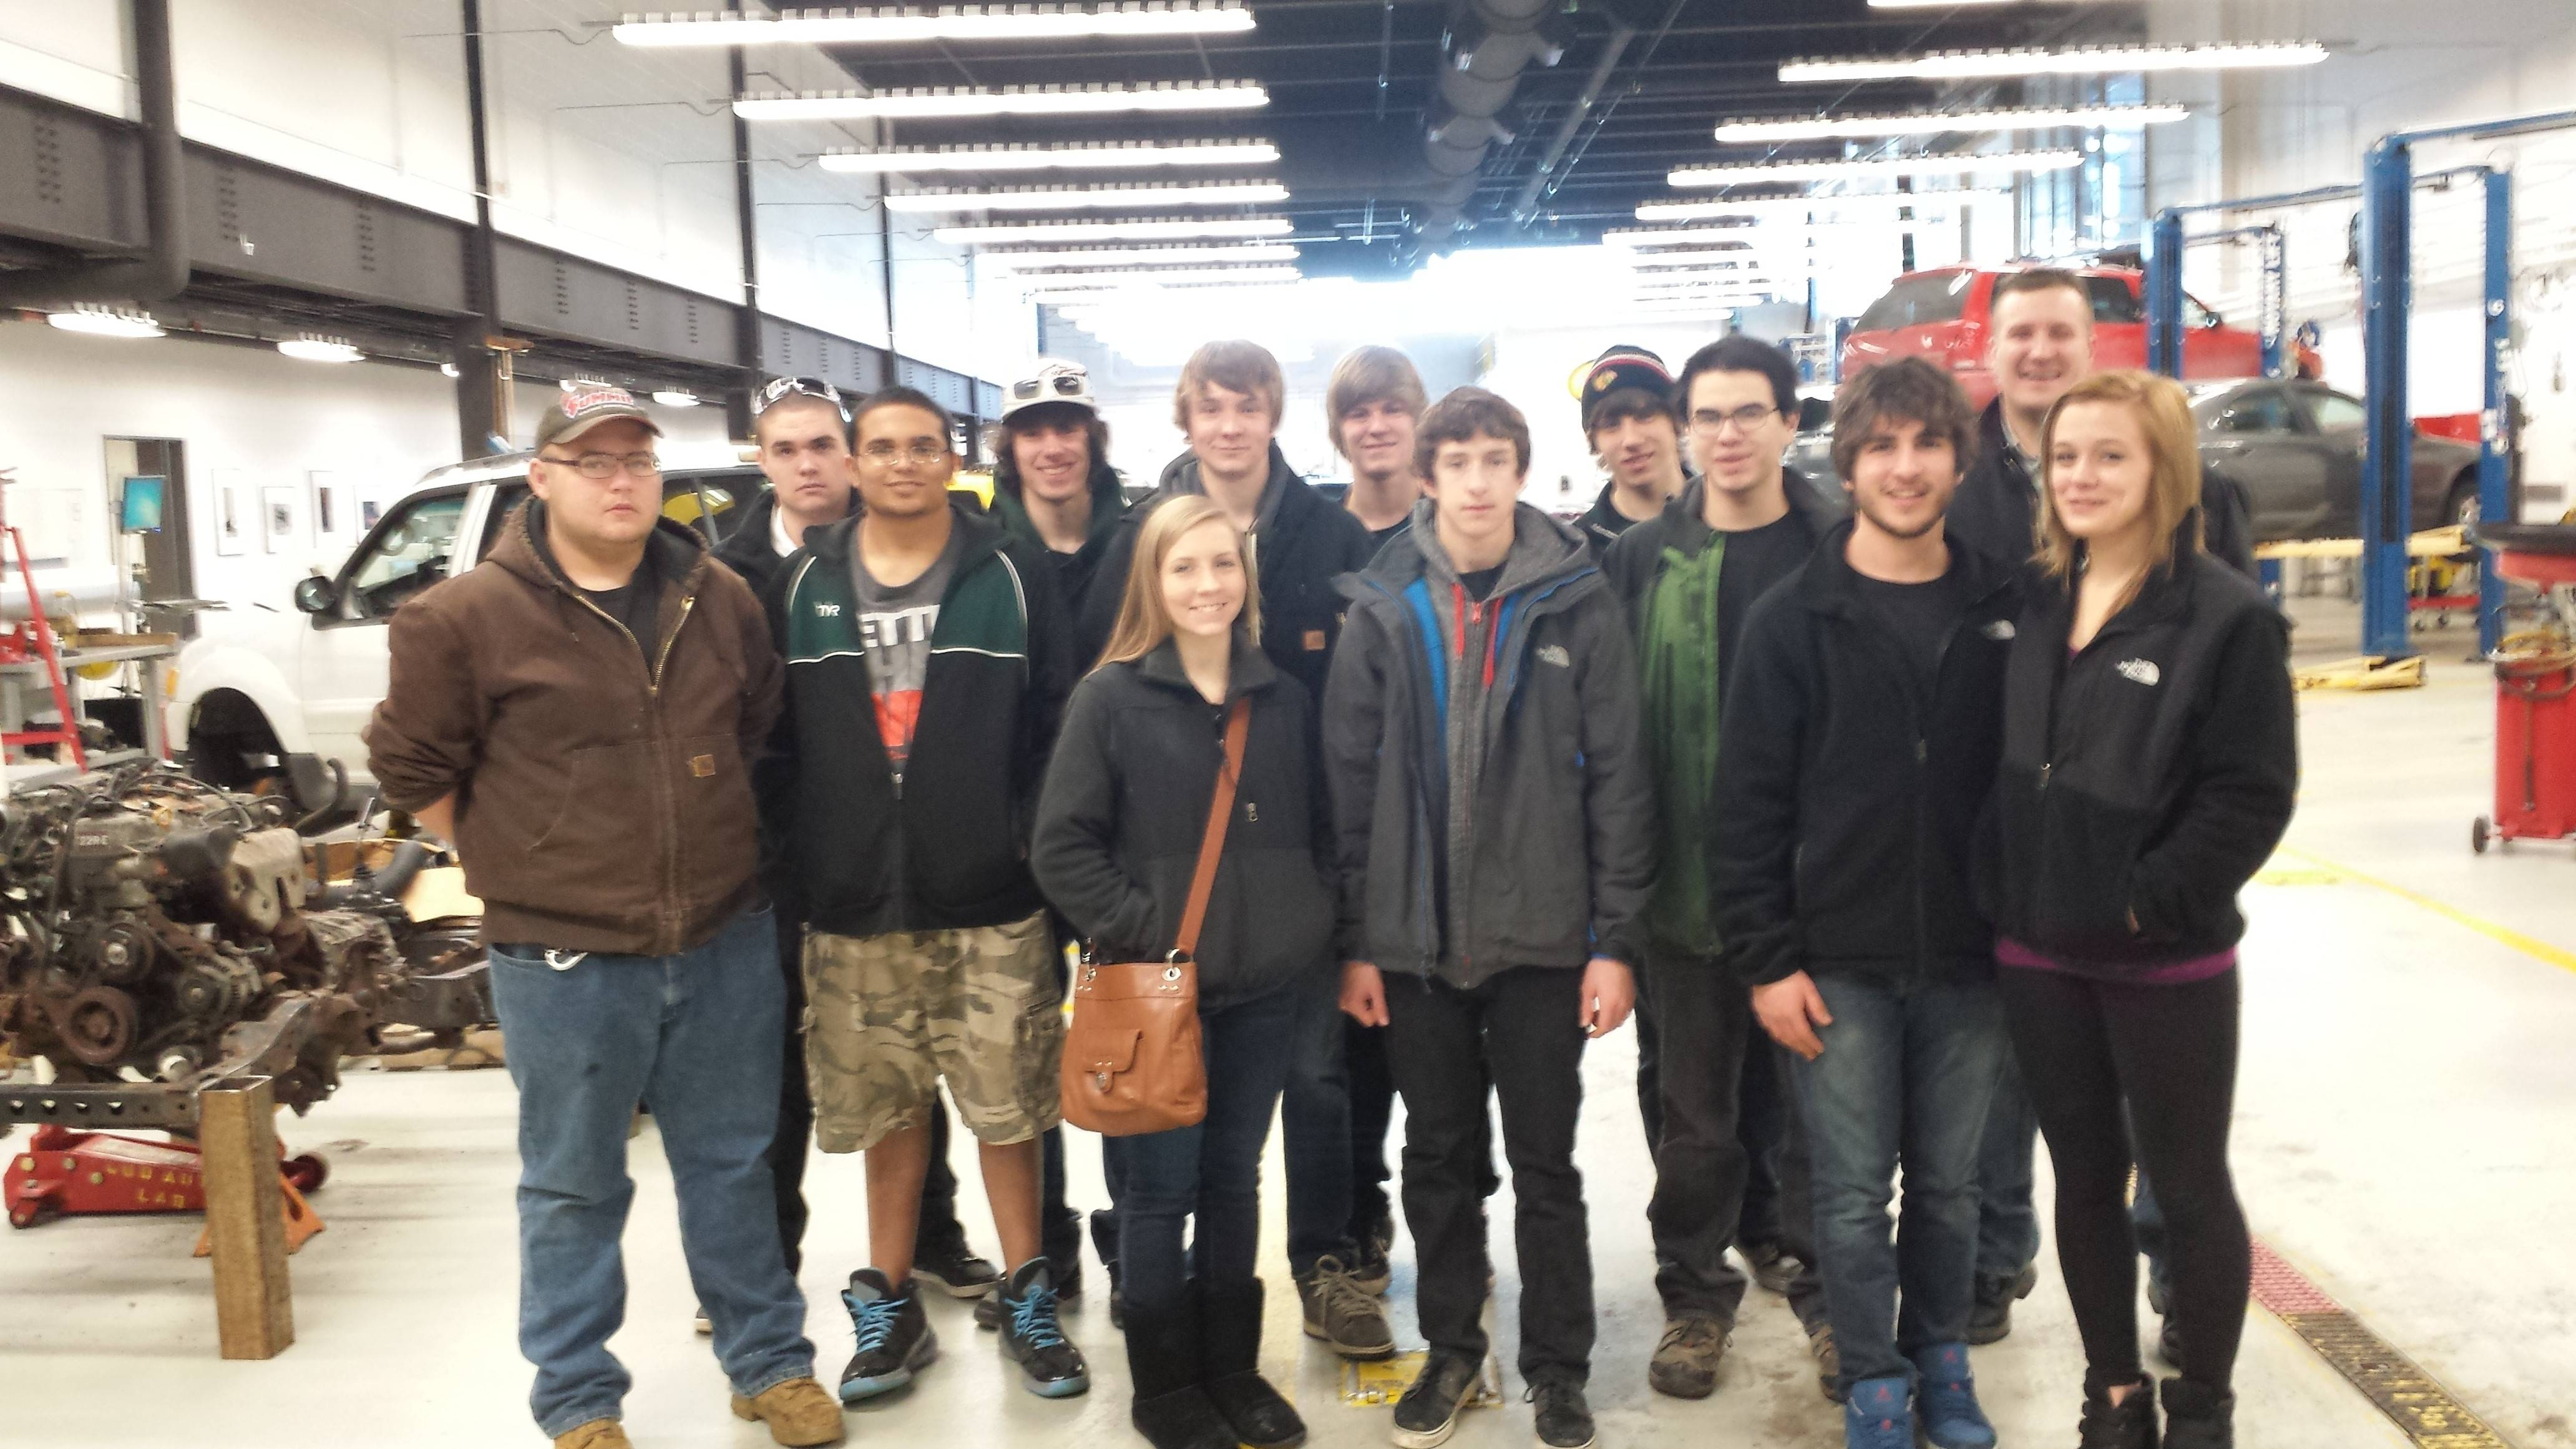 Pictured are District 214 students qualified to compete in the 2014 SkillsUSA Championships for Skill and Leadership.